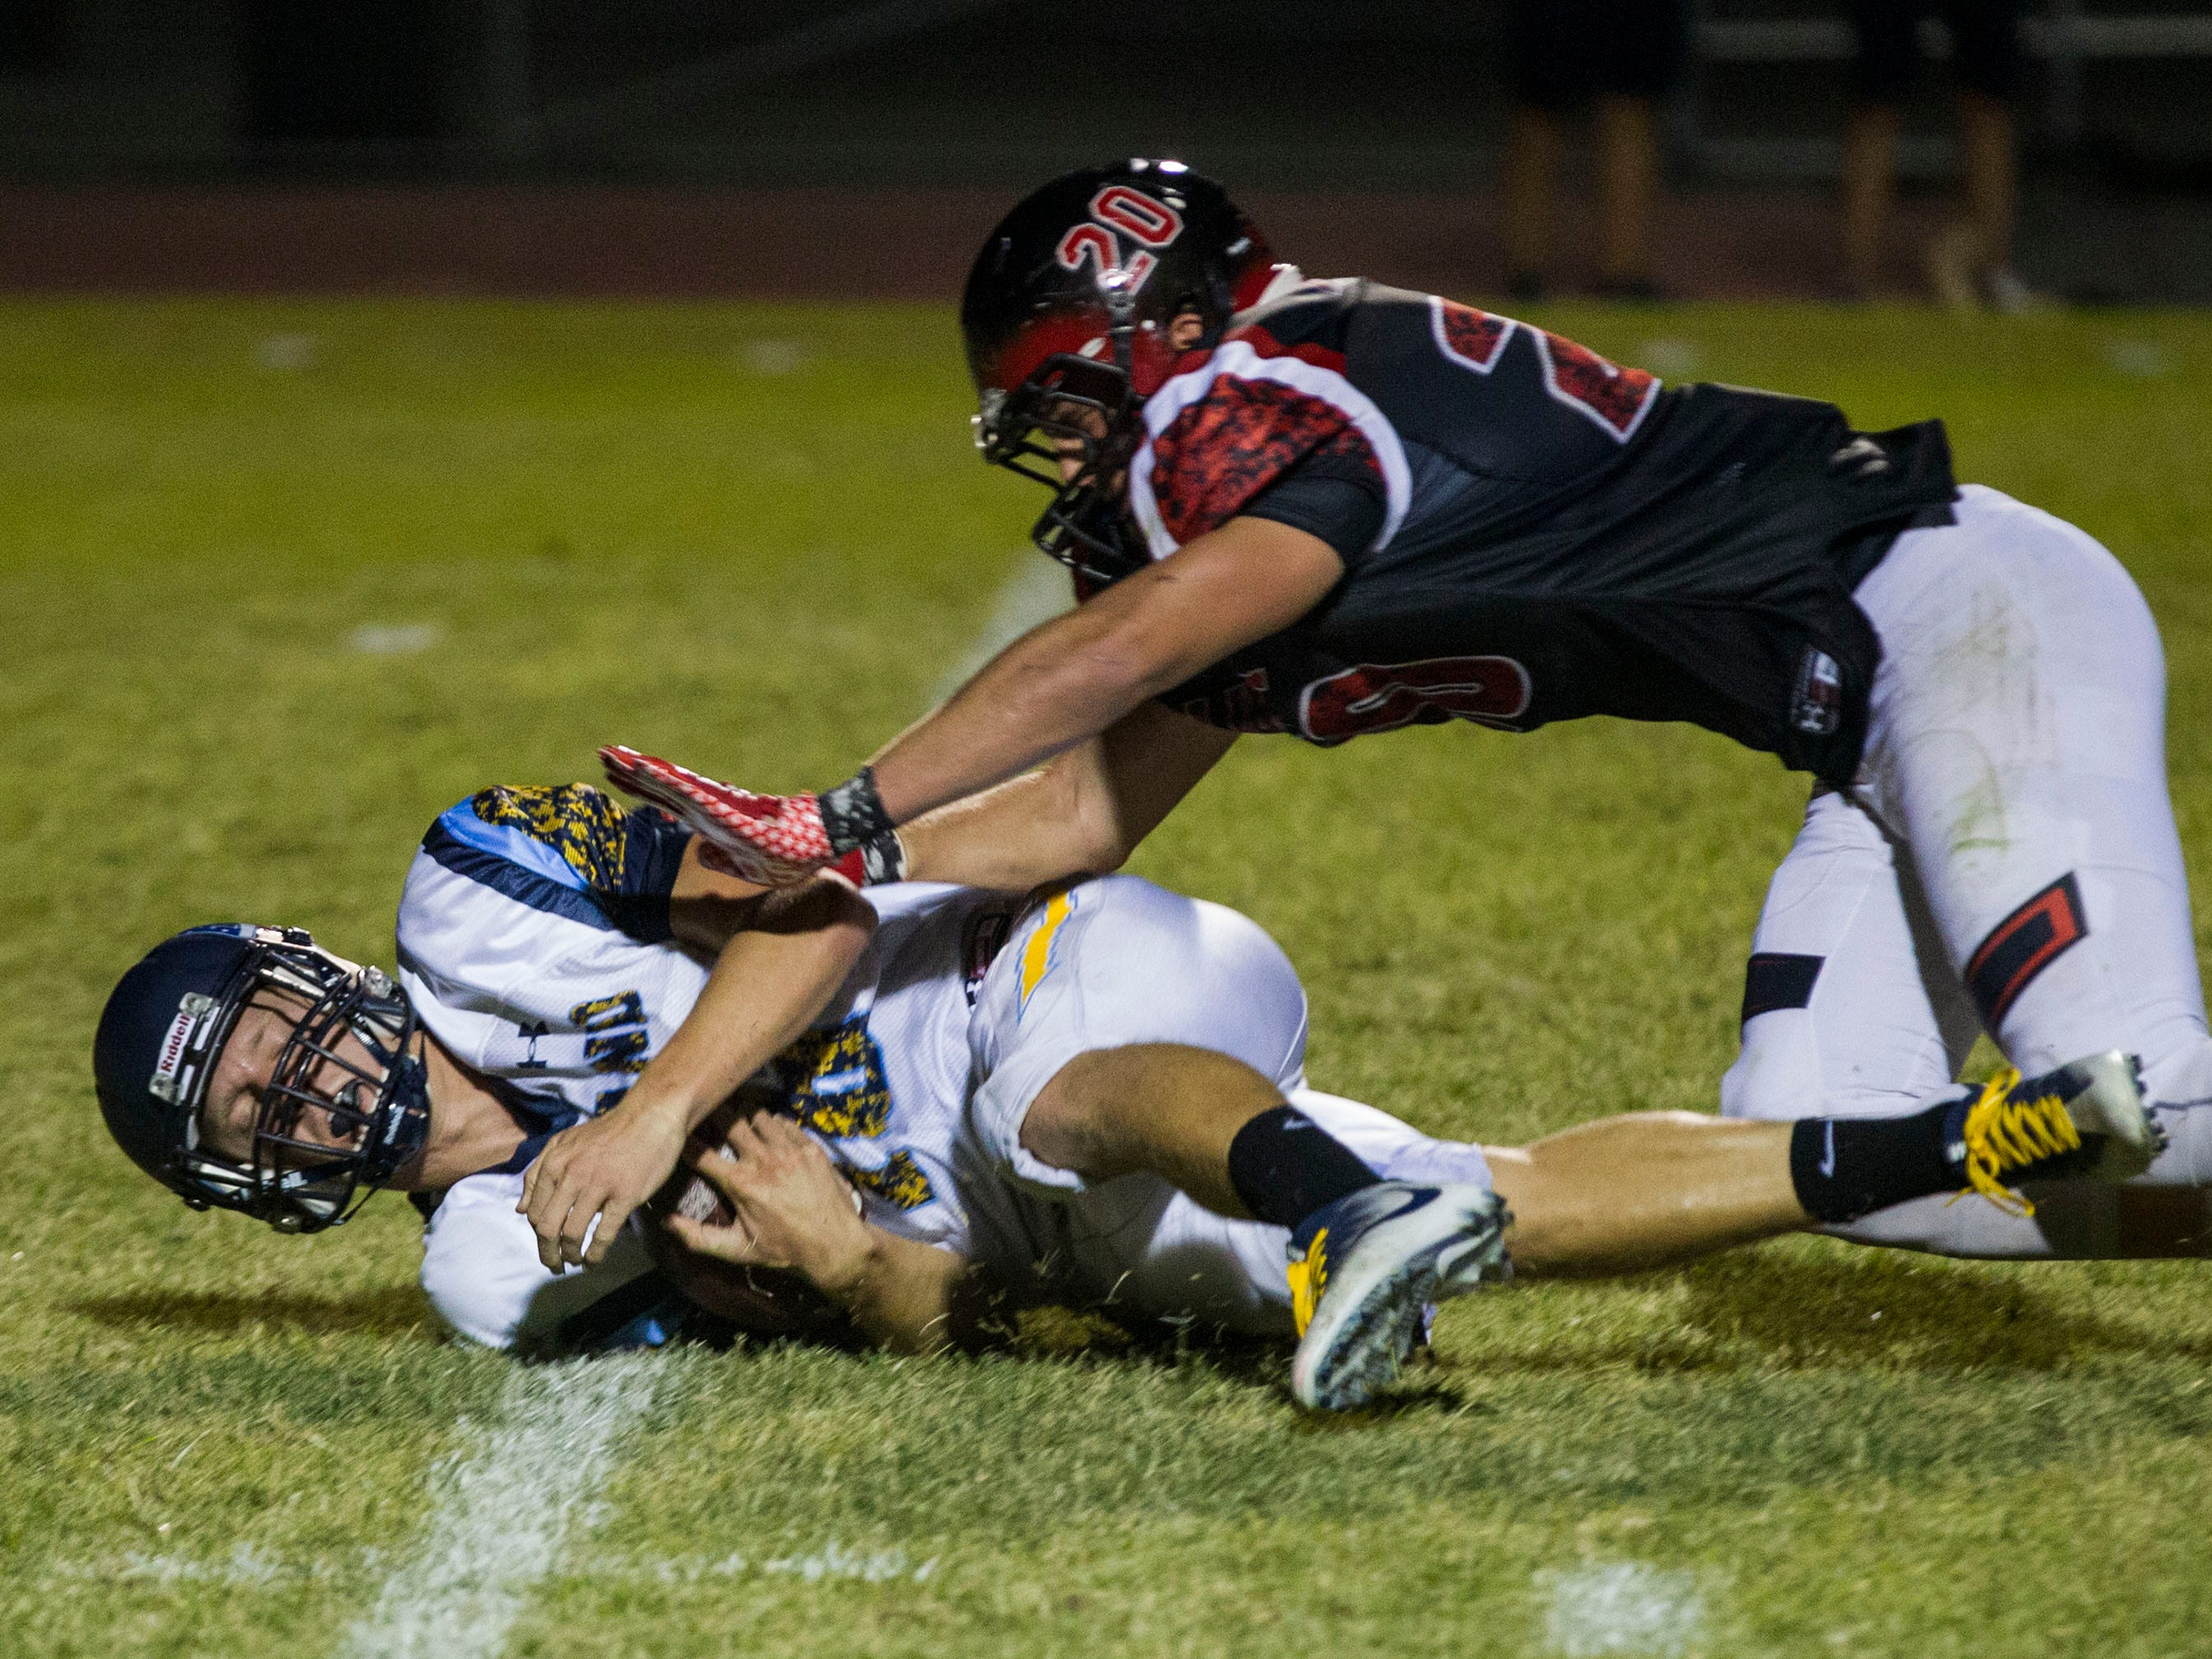 Leland quarterback Carson Yates gets sacked by Liberty's Ryan Puskas during their game in Peoria Friday, Sept.14, 2018. #azhsfb